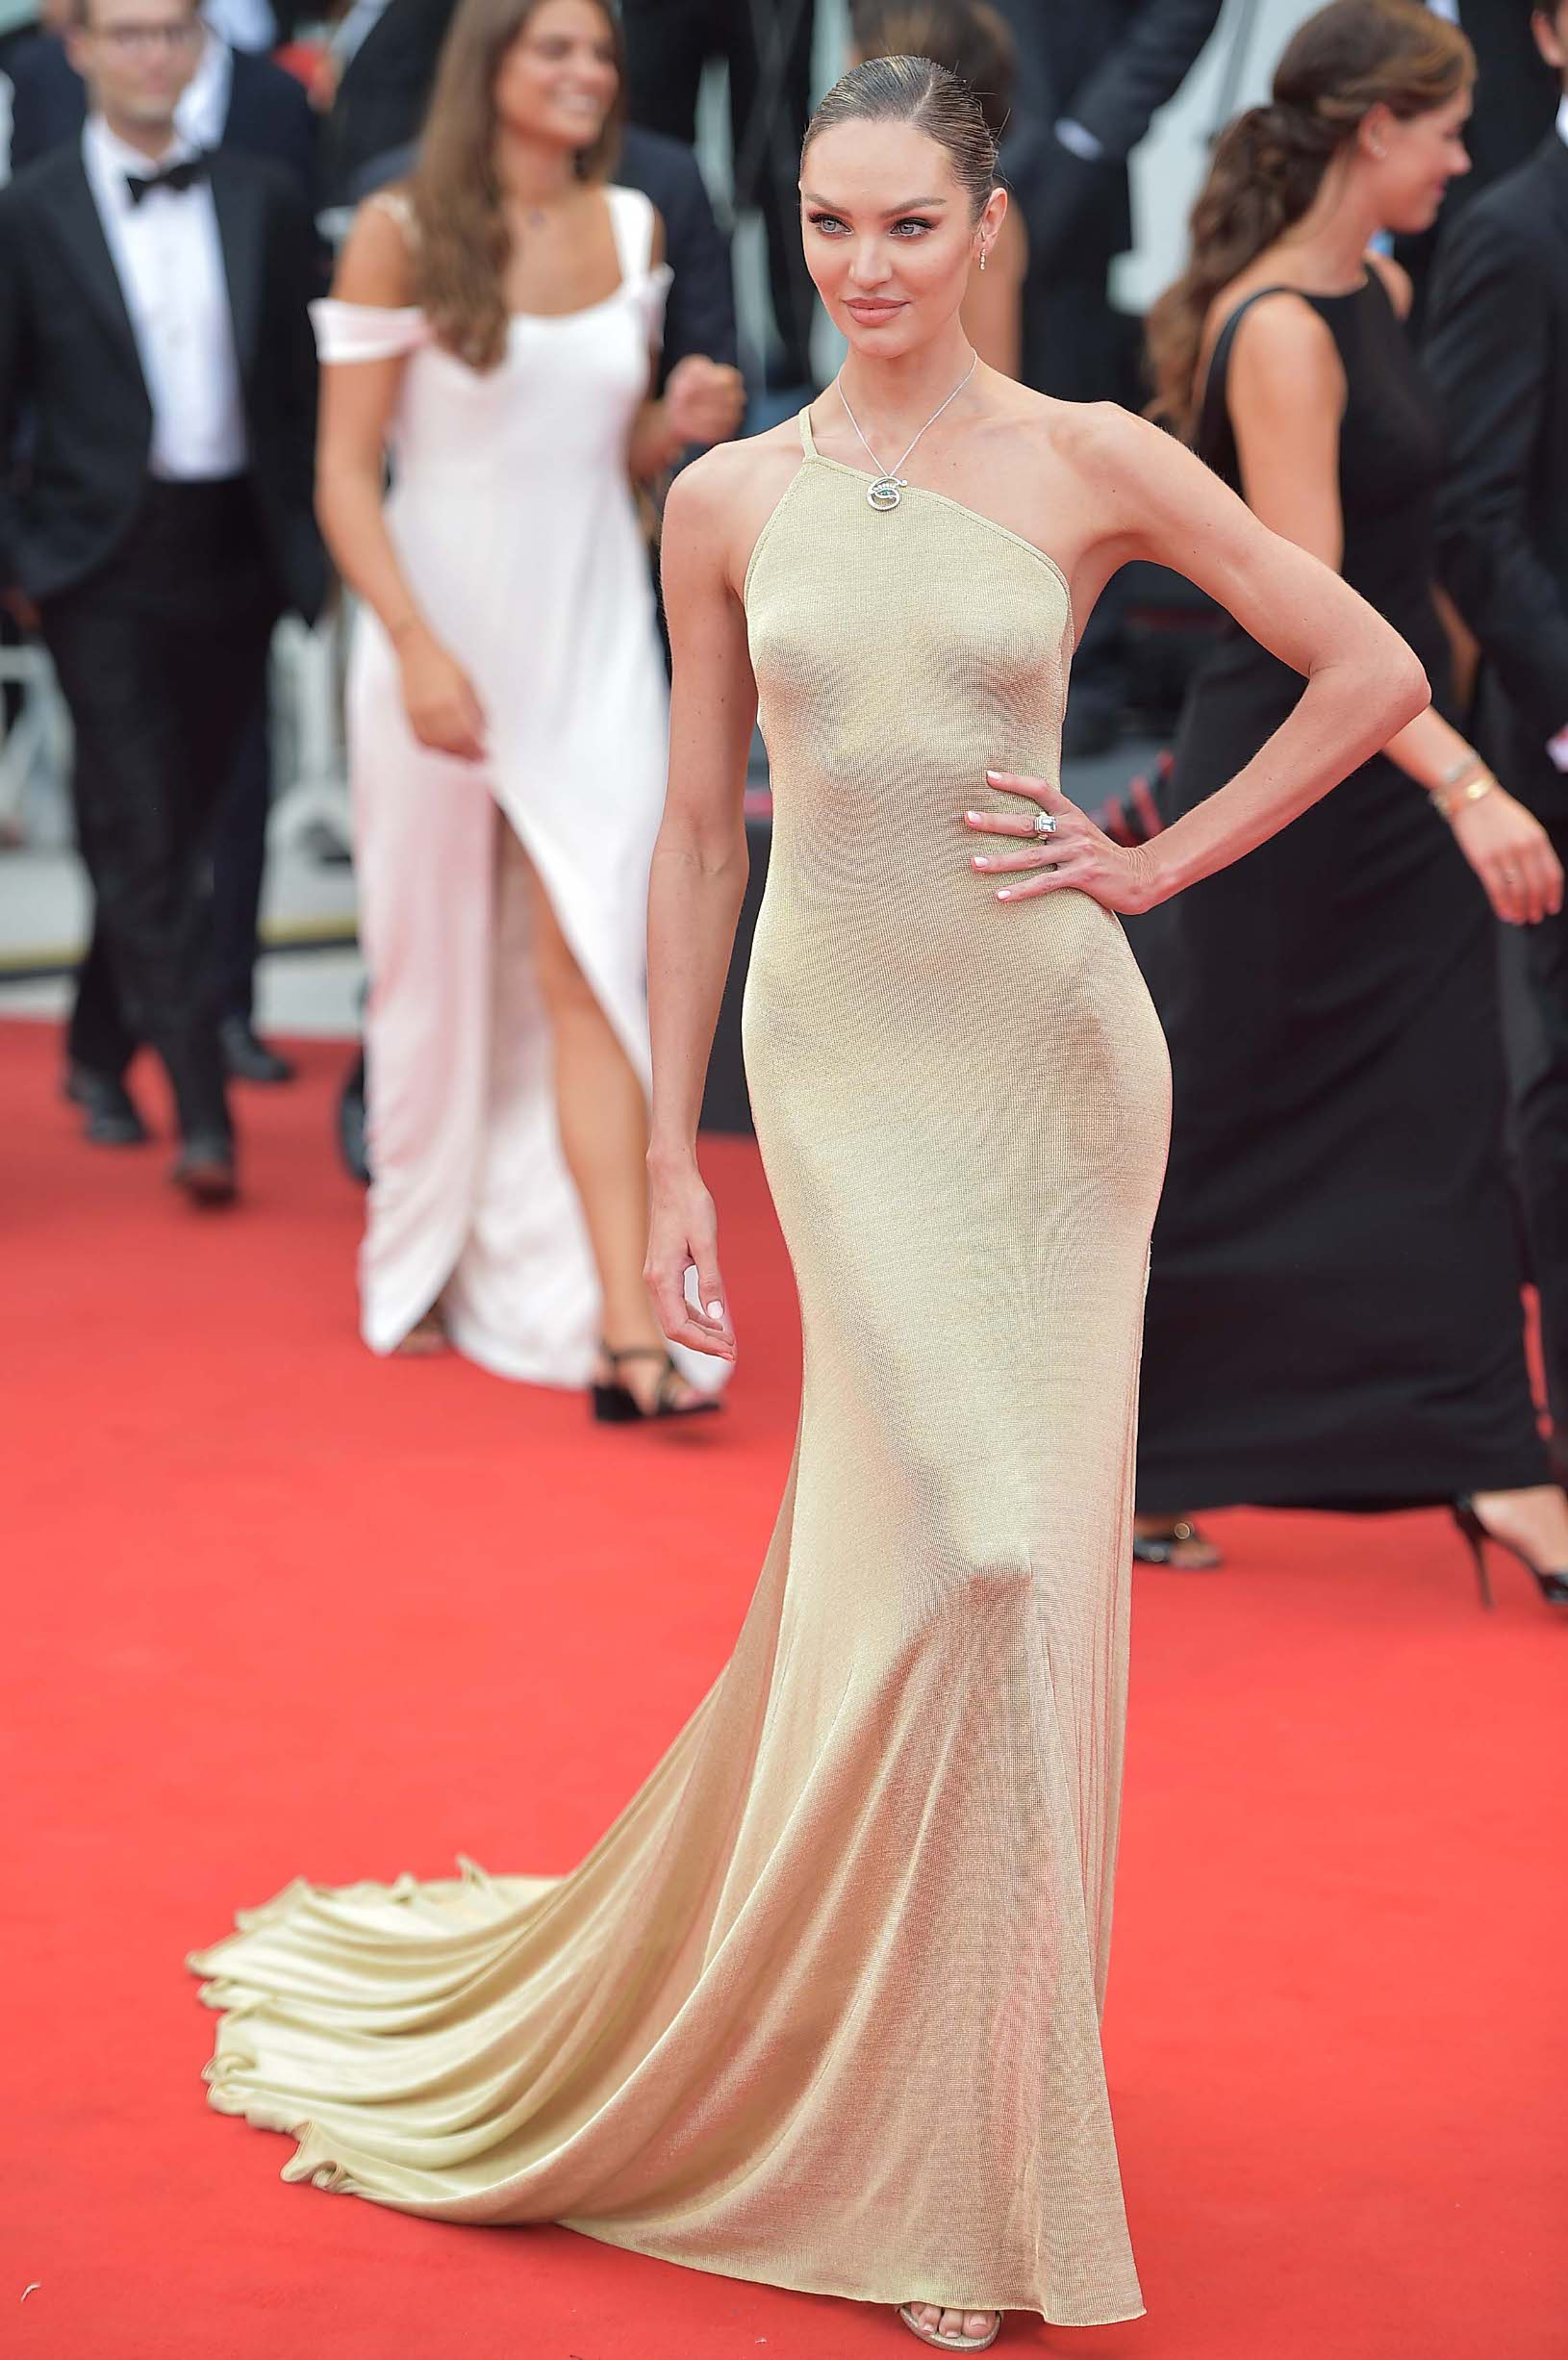 VENICE, ITALY - AUGUST 28:  Candice Swanepoel walks the red carpet ahead of the Opening Ceremony and the